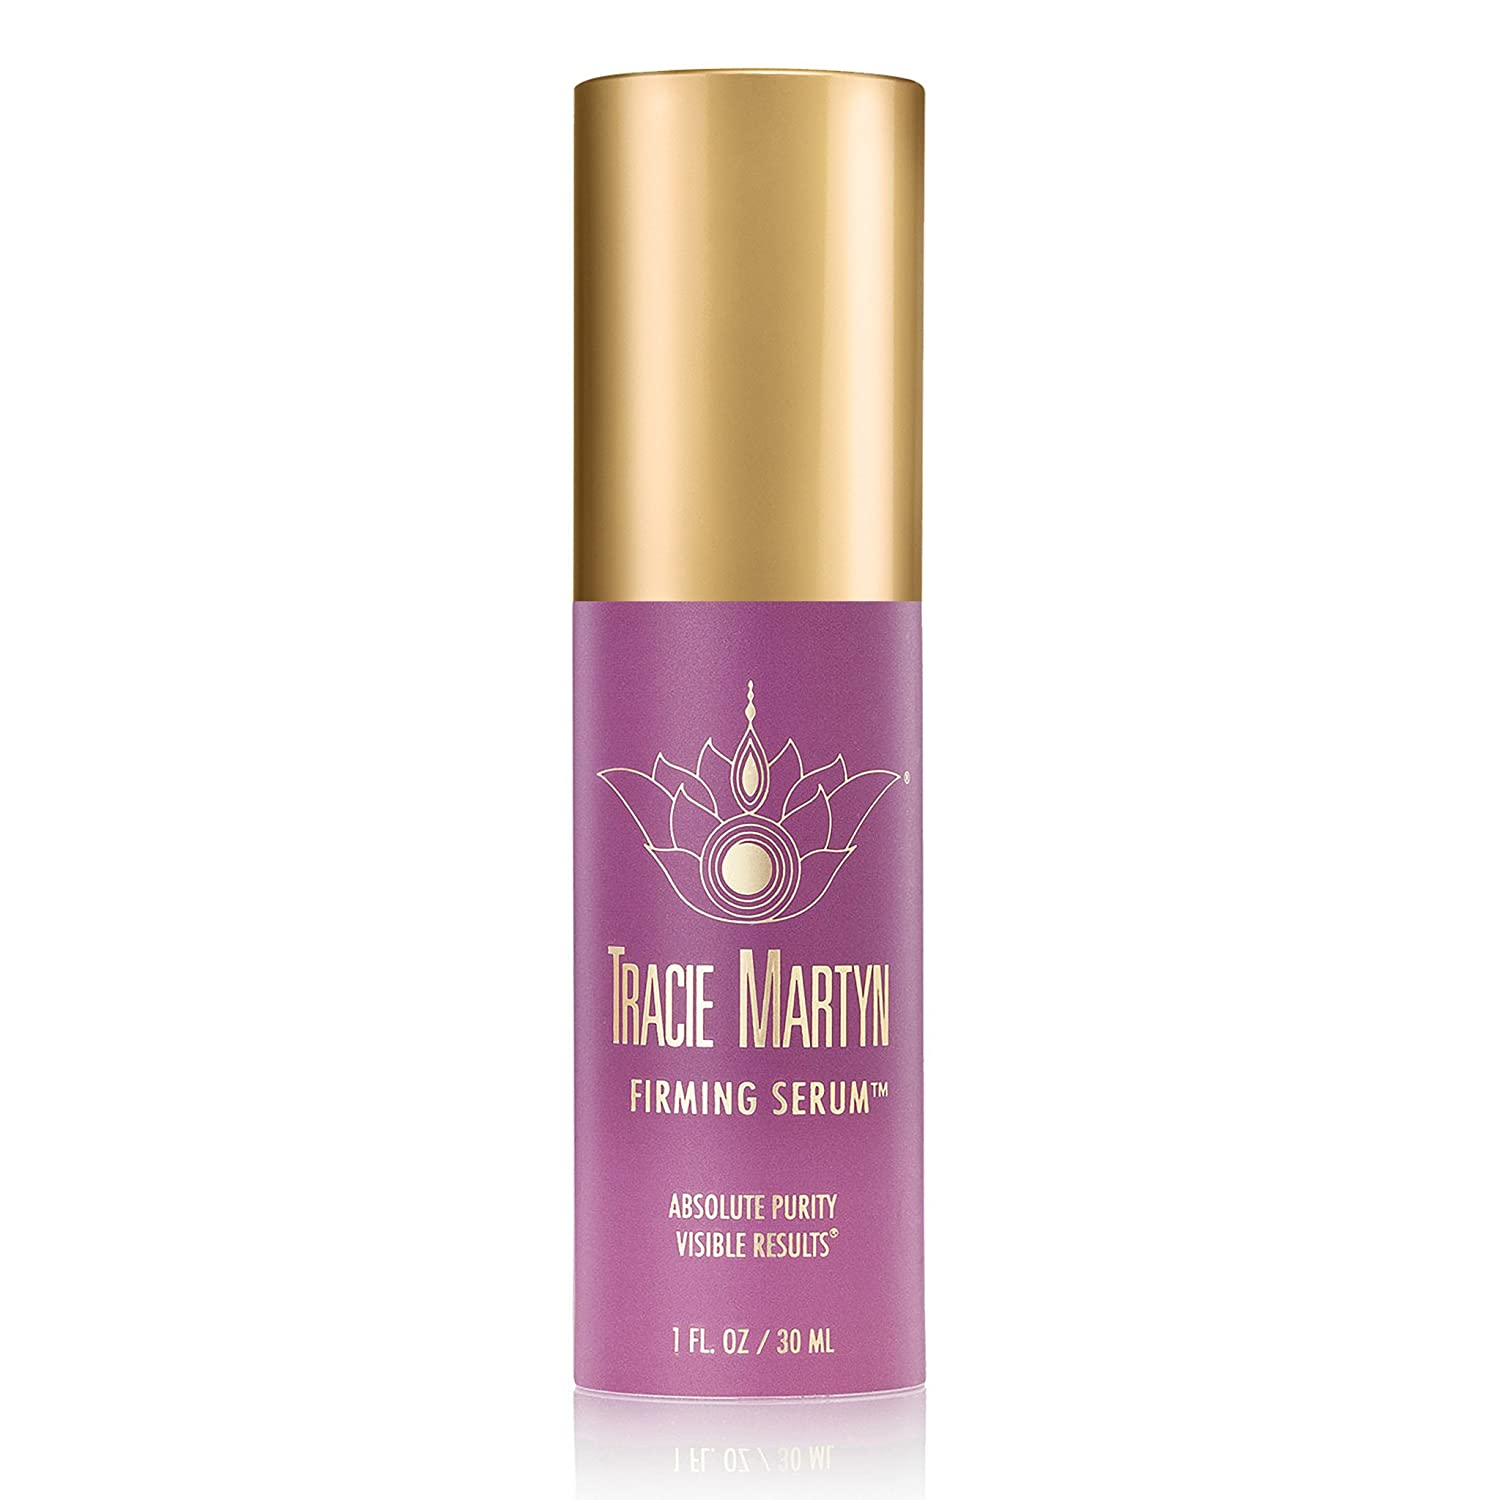 Tracie Martyn Firming Serum | Daily Face & Eye Multi-Correction Serum | Brightens & Tightens | With Vitamin C, Resveratrol, & Superoxide Dismutase | 1 fl. oz.